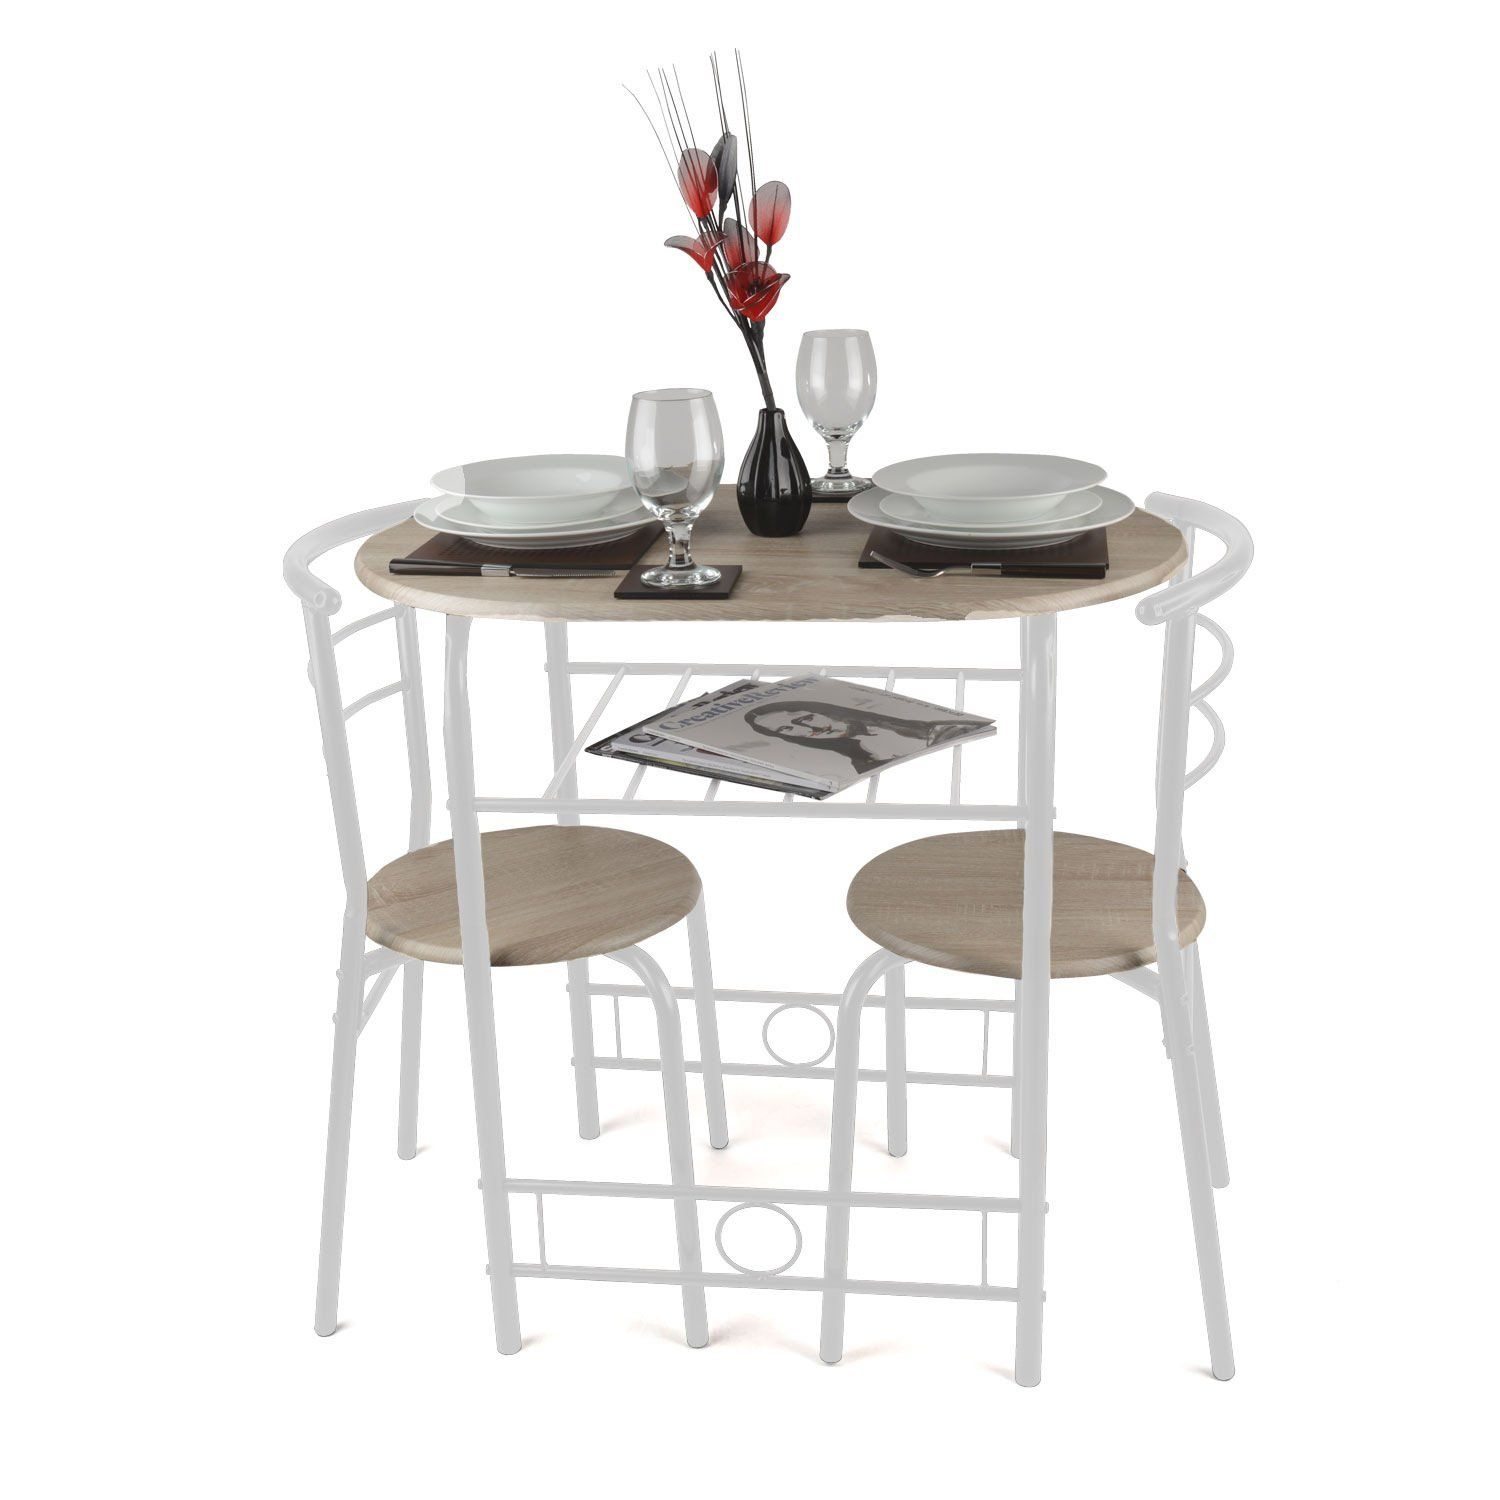 Christow 3 Piece Breakfast Dining Set White: Amazon.co.uk: Kitchen In Most Popular 3 Piece Breakfast Dining Sets (Photo 3 of 20)